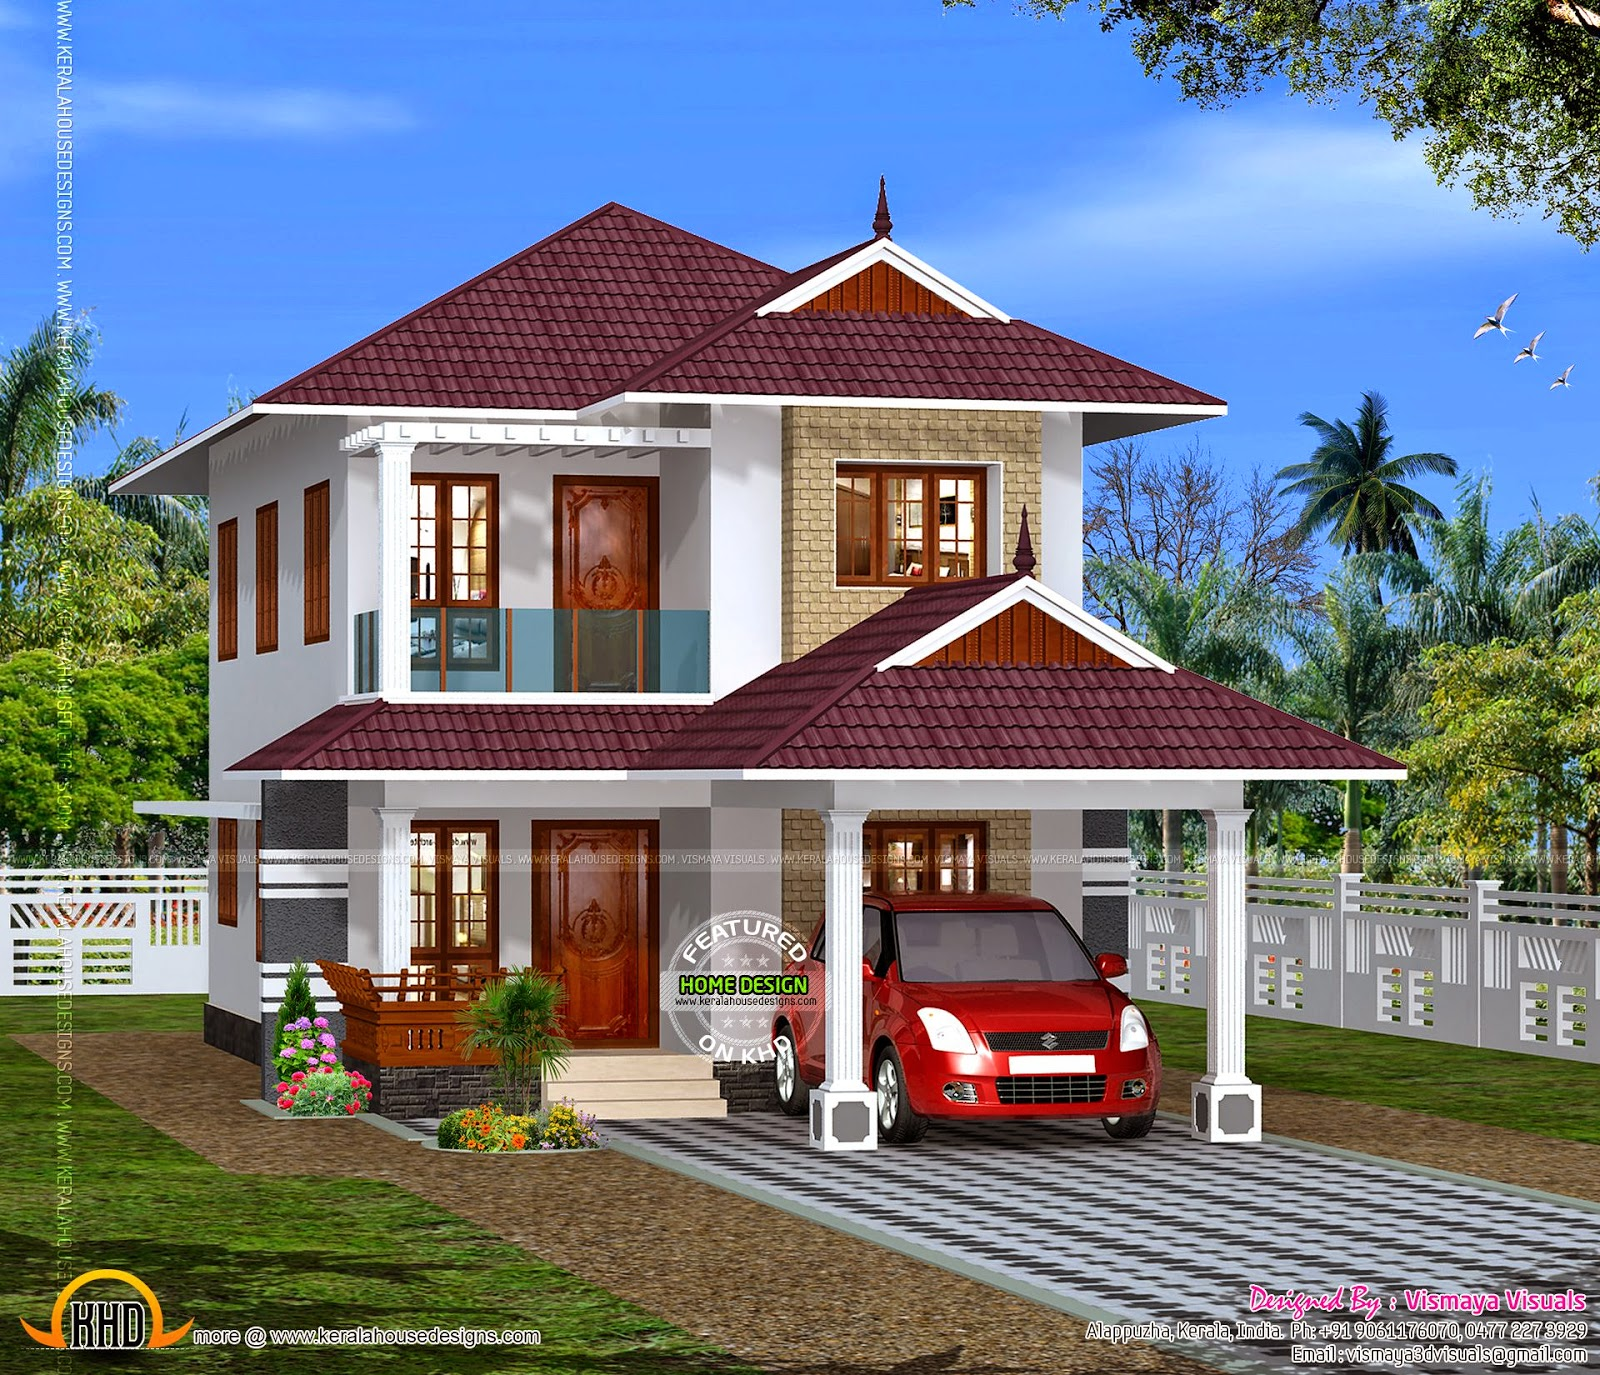 Clean box type house exterior keralahousedesigns for Indian home exterior designs